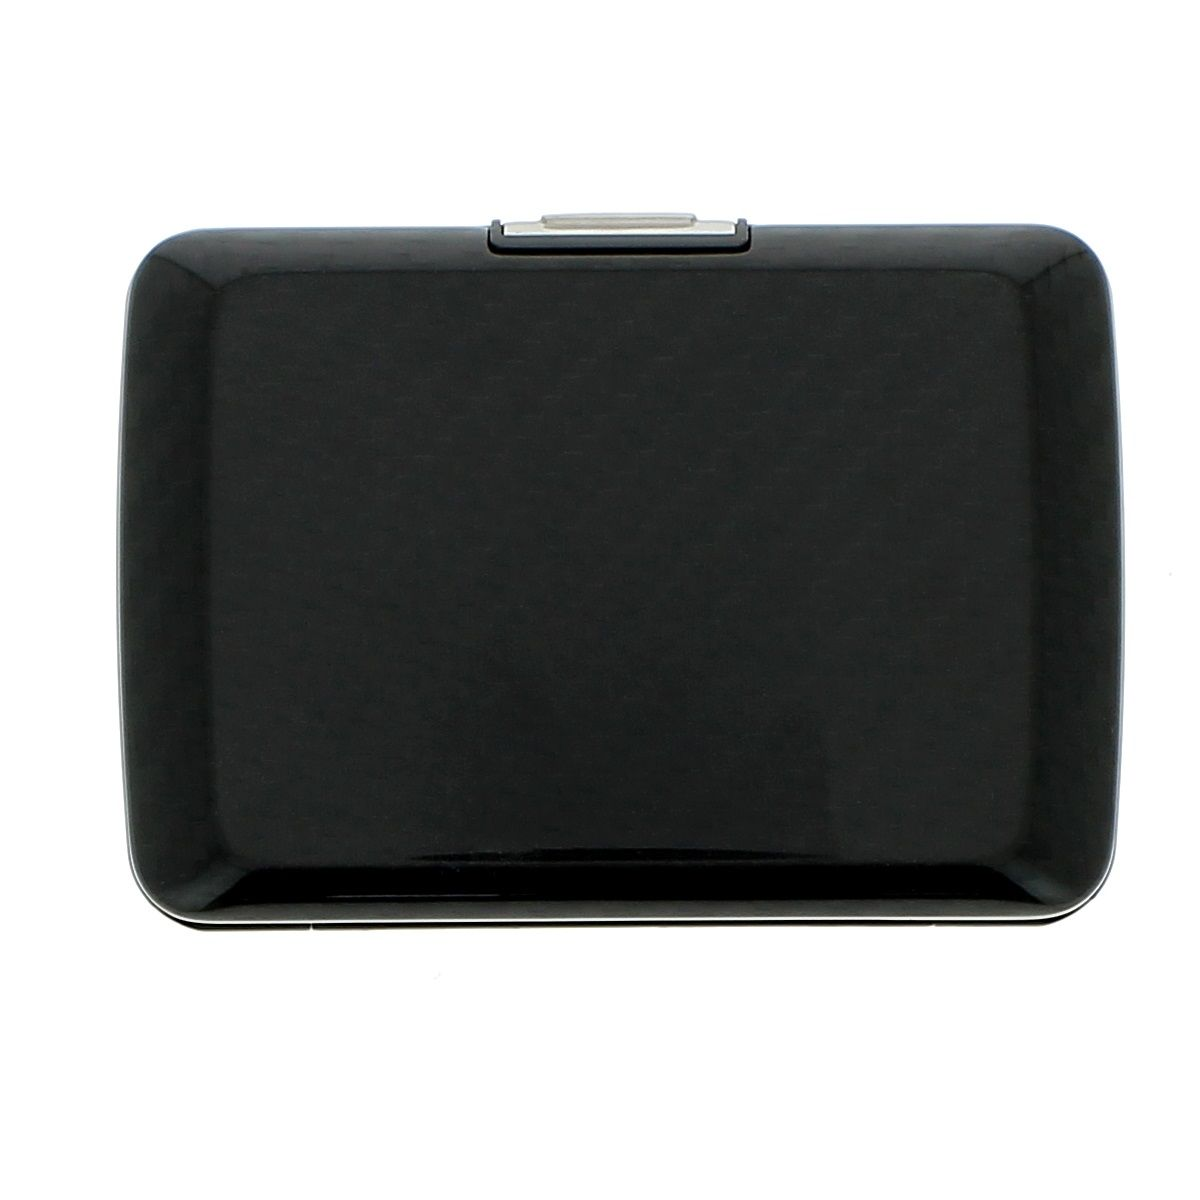 OGON Carbon Wallet V2.0 - Black